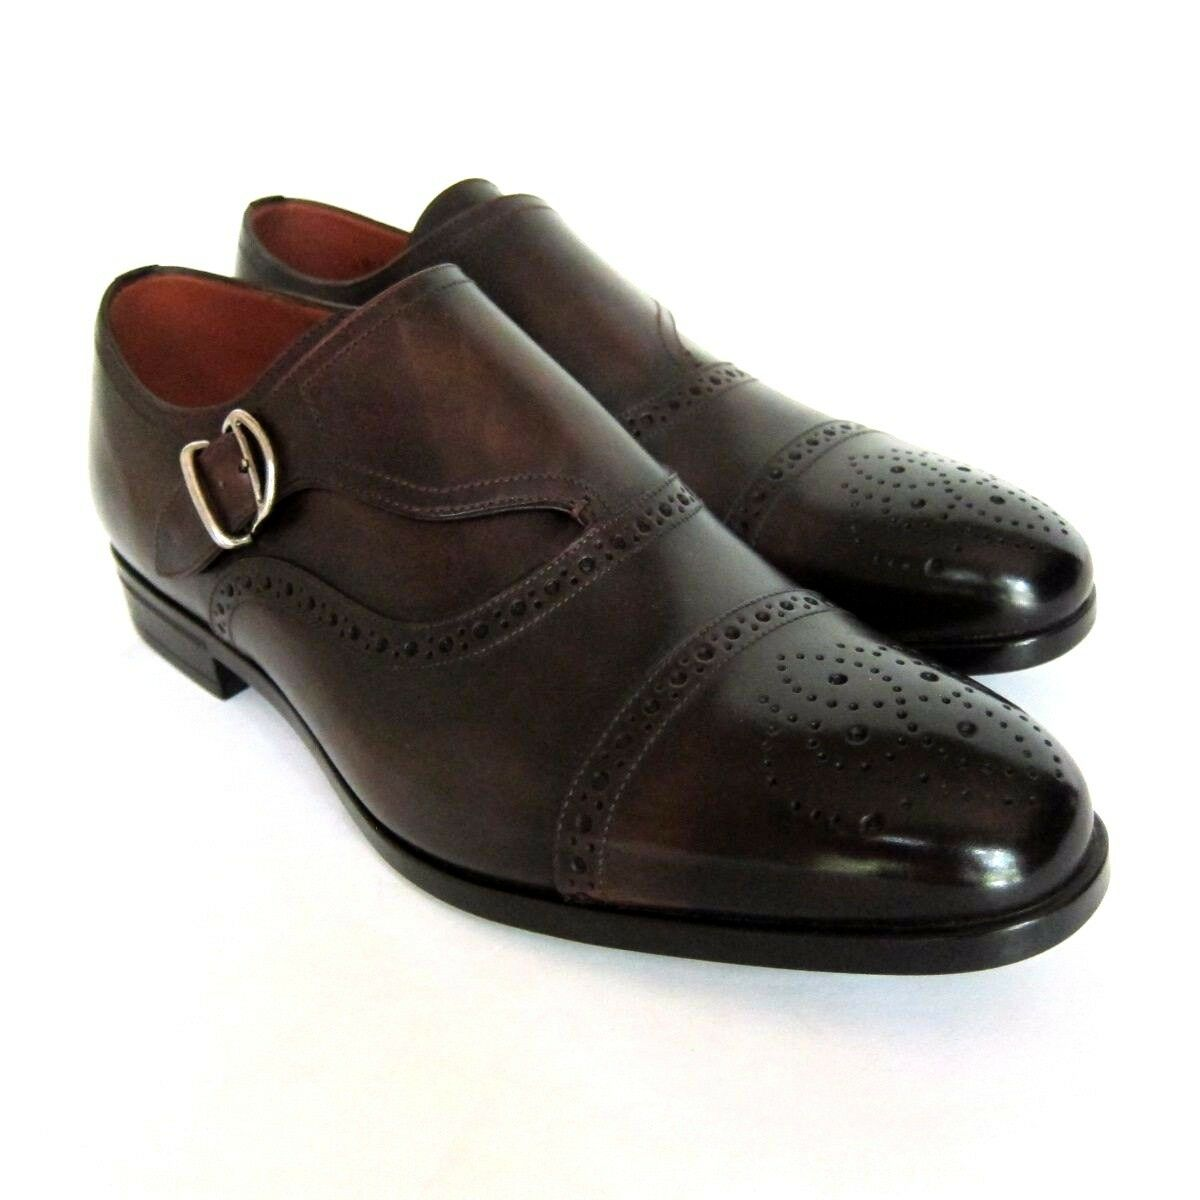 S-1900140 New Bally Lanor Brown Washed Loafers shoes Size US 8.5D Marked 7.5E